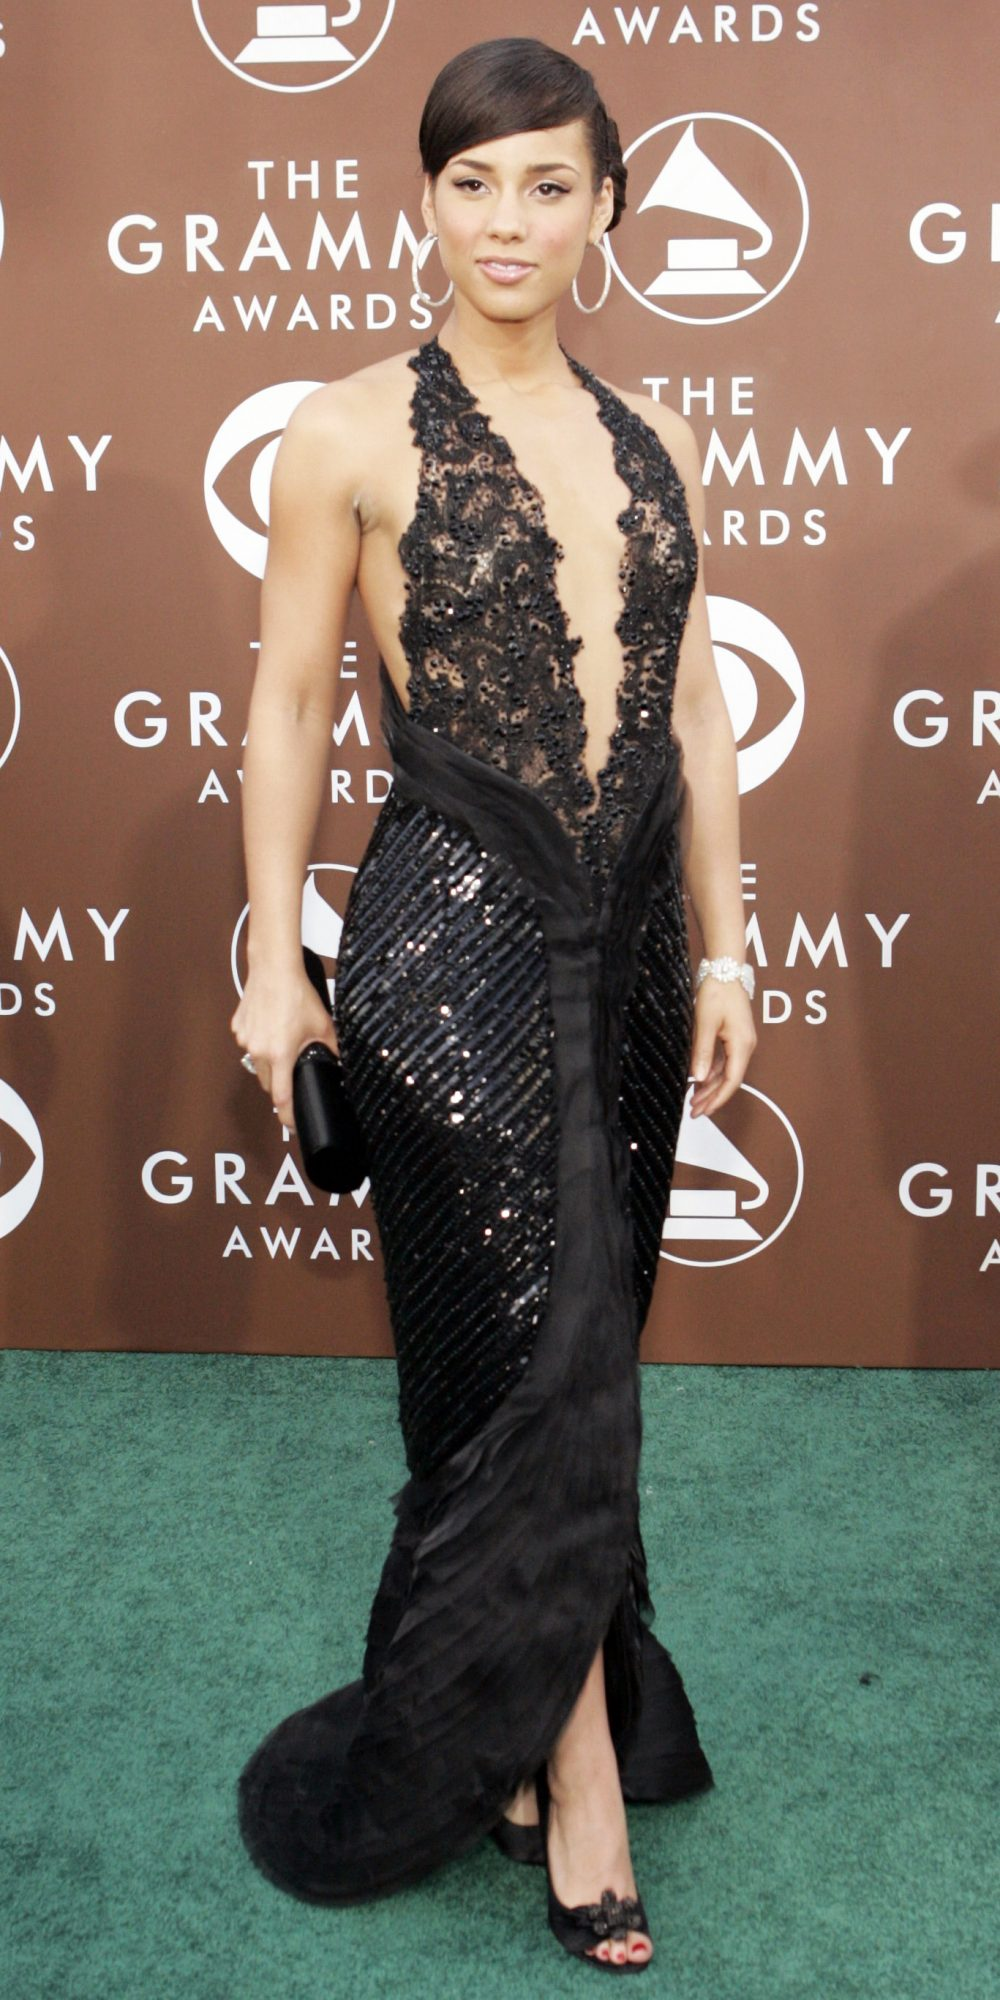 Singer Alicia Keys poses at Grammy Awards in Los Angeles